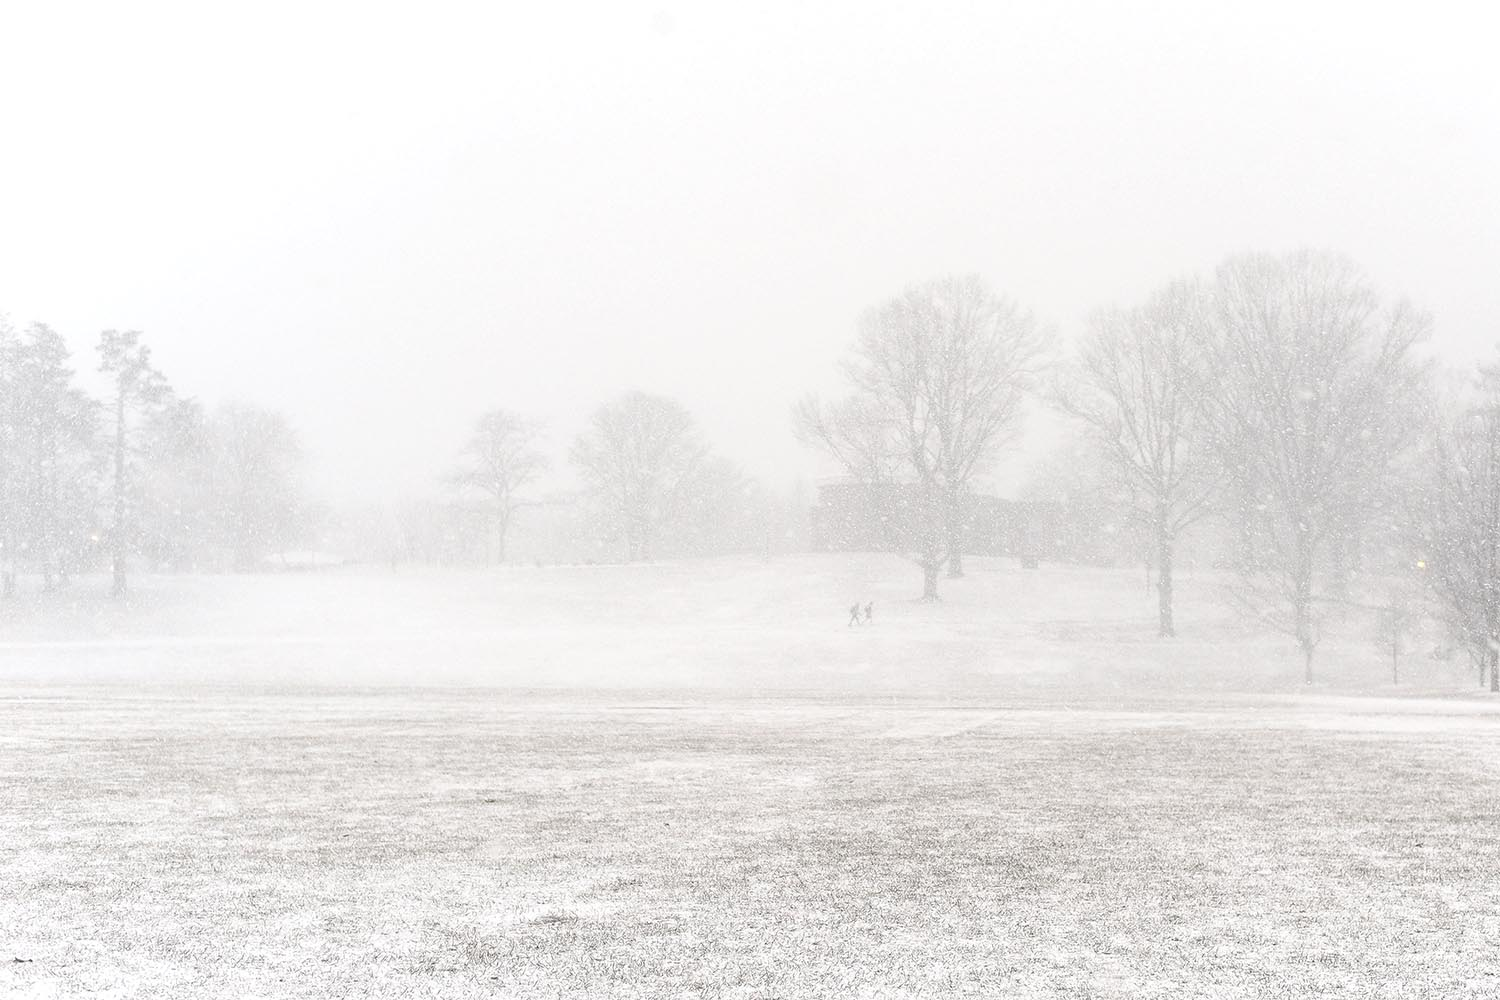 A snow squall stormed through Connecticut On Jan. 30, forming nearly white-out conditions on Wesleyan's campus. Temps plummeted from 30 degrees at 4 p.m. to 5 degrees at midnight.